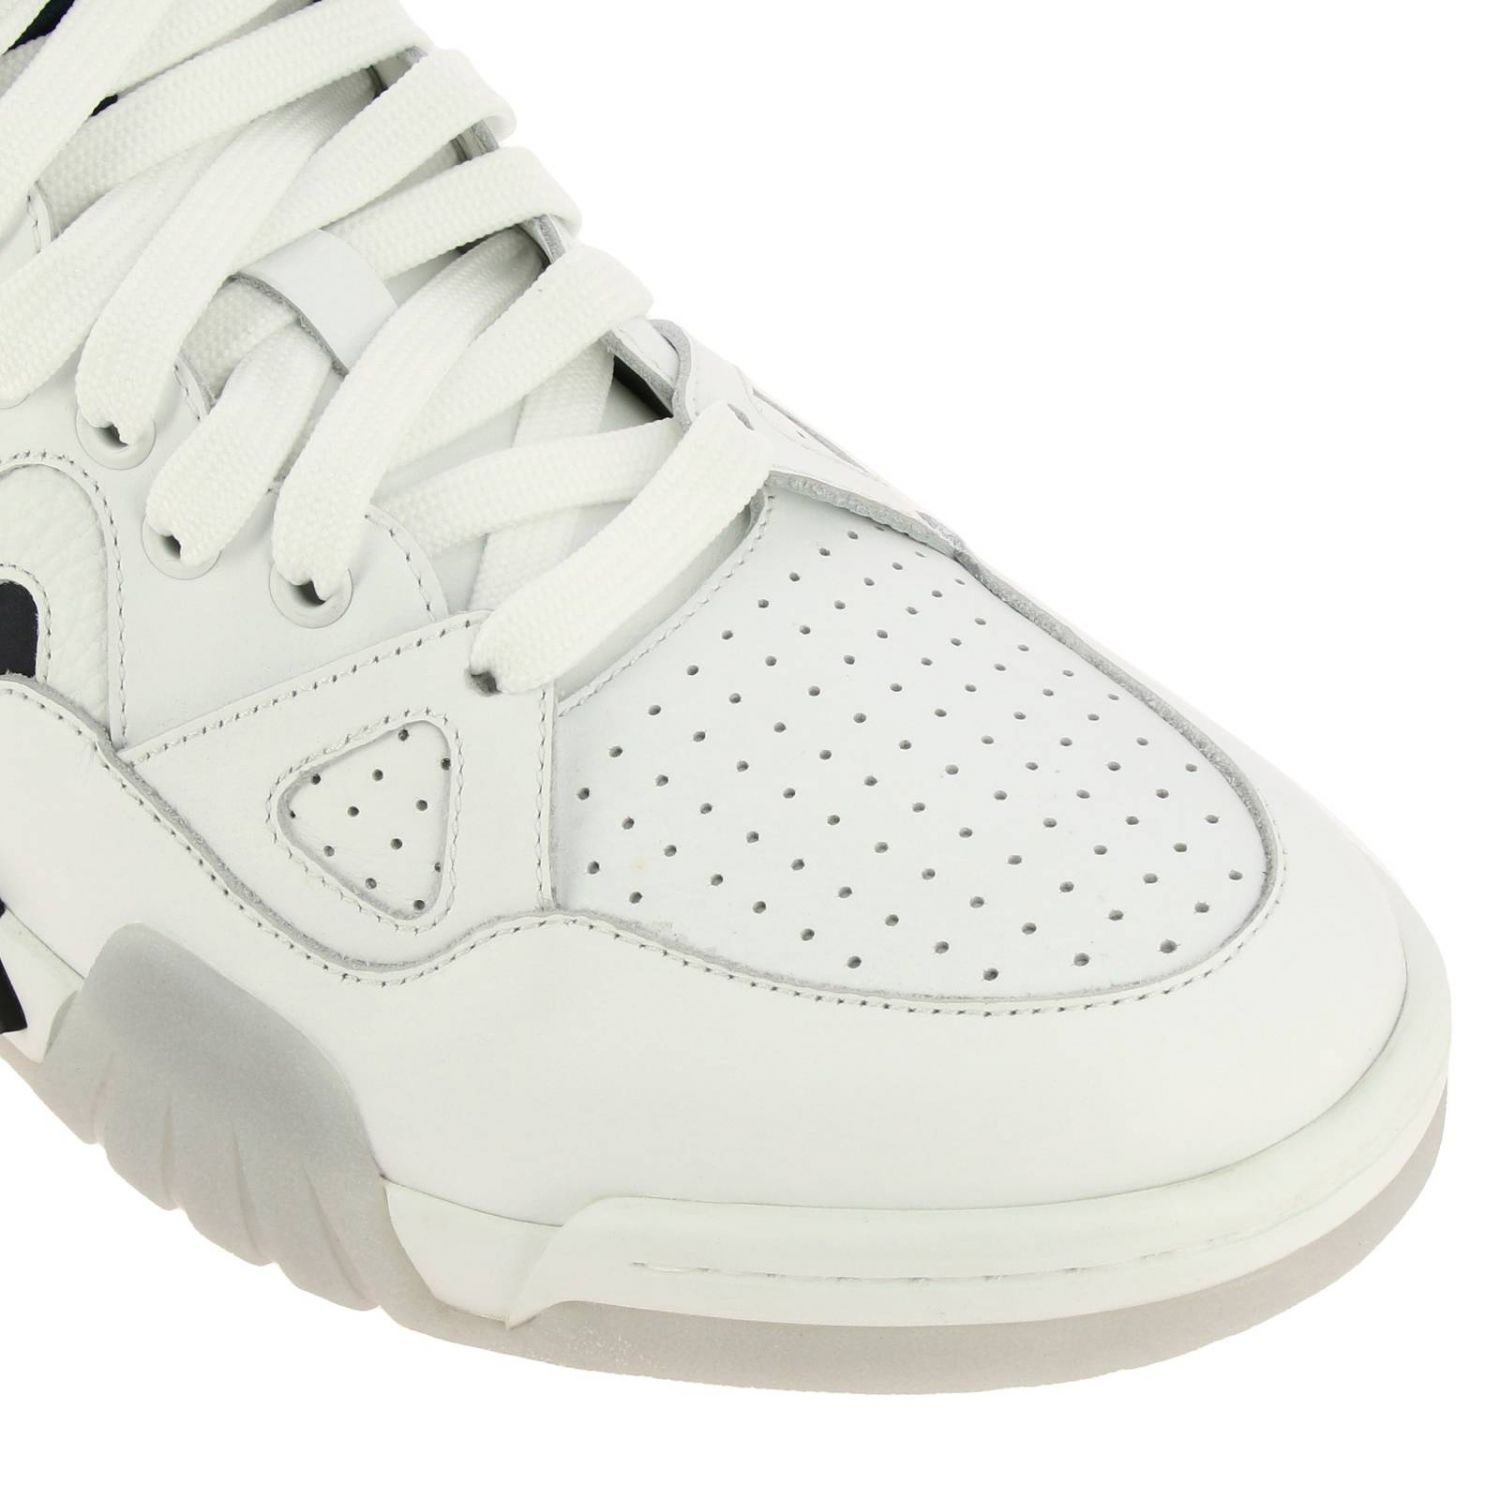 Versace sneakers in leather with maxi rubber sole white 3